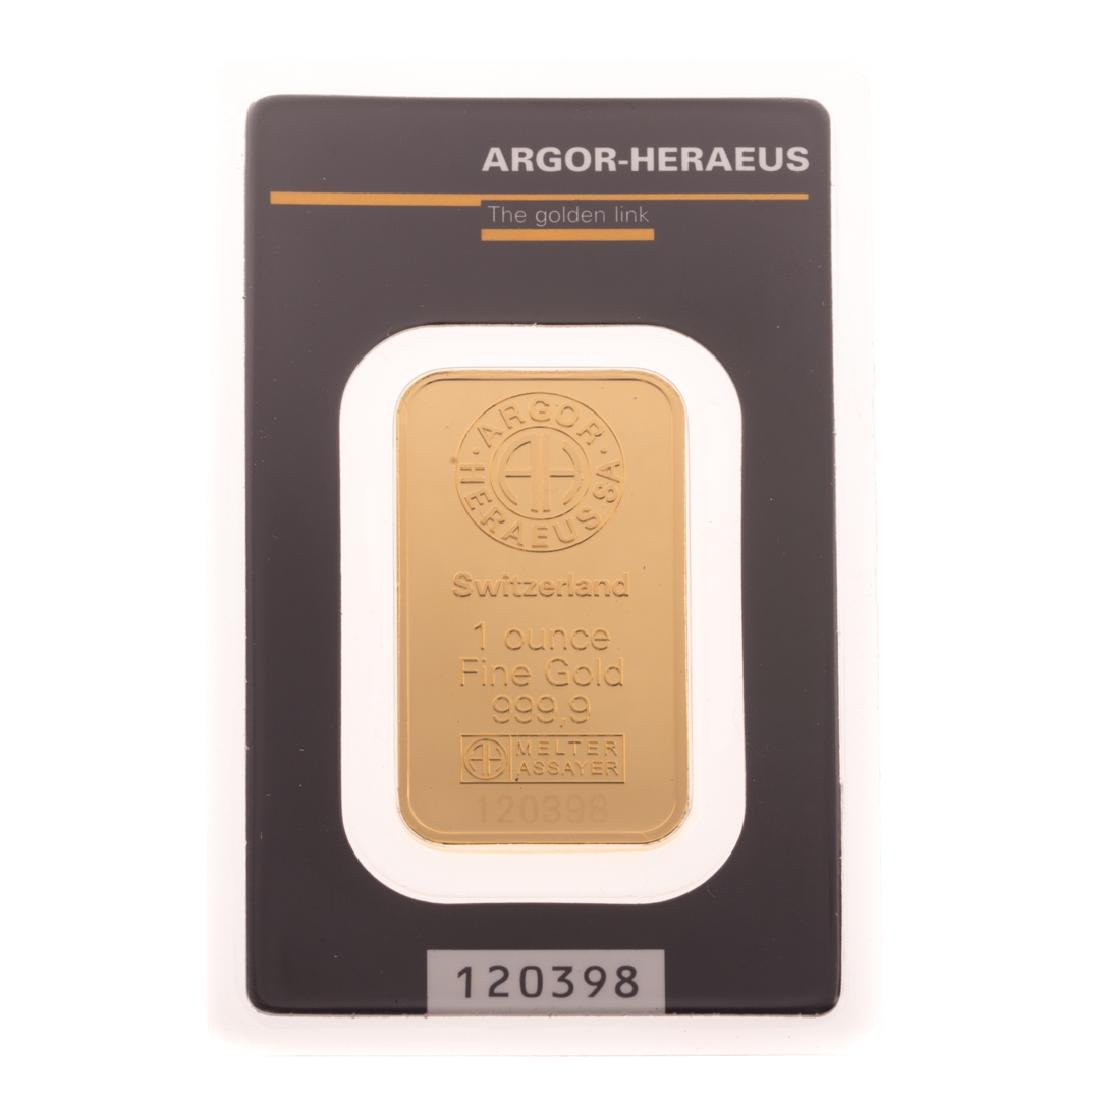 [US] 1 Ounce .999 Gold Bar by Argor-Heraeus